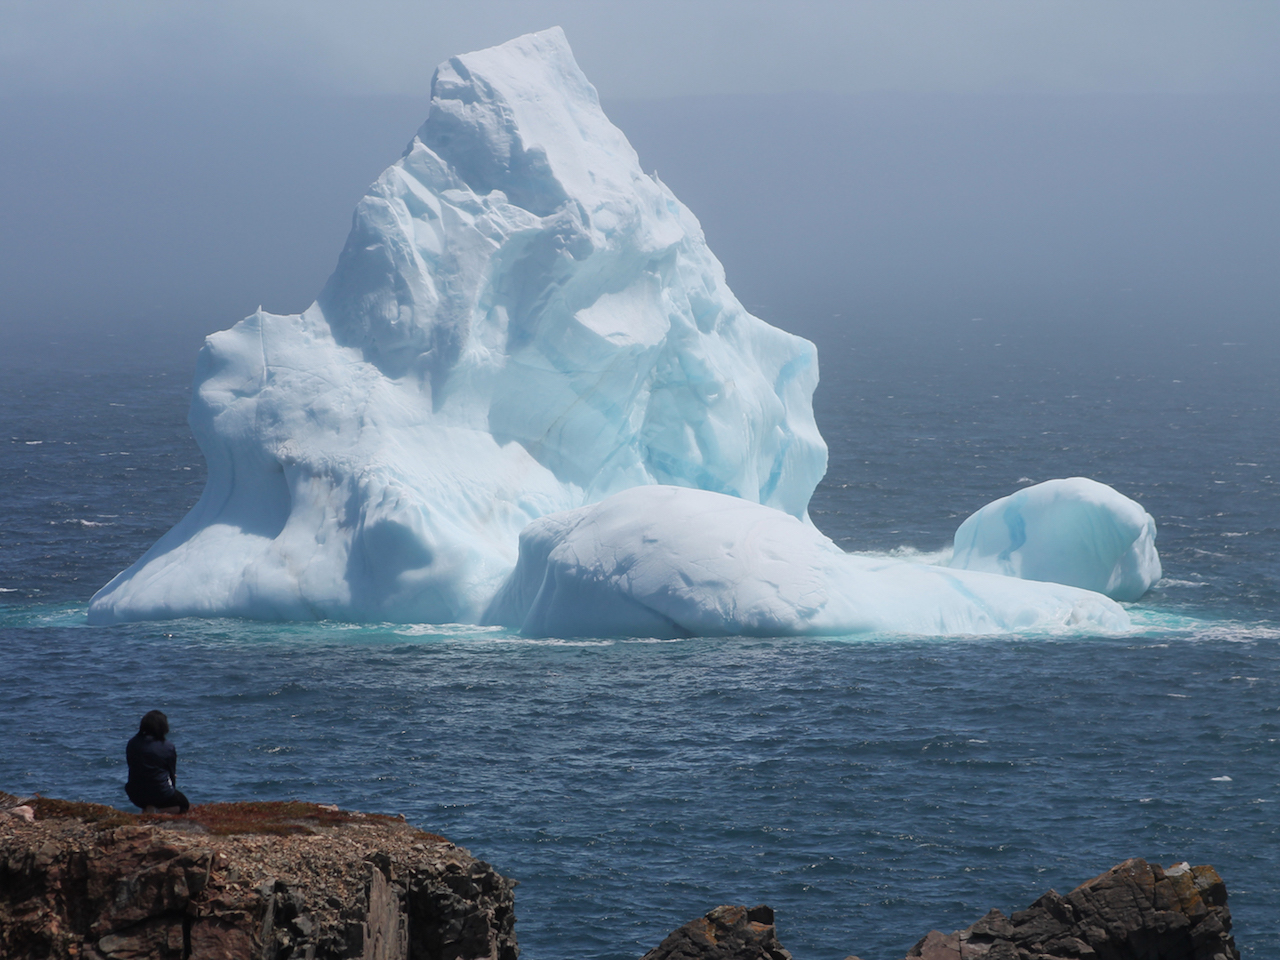 An iceberg as seen from the edge of a cliff.